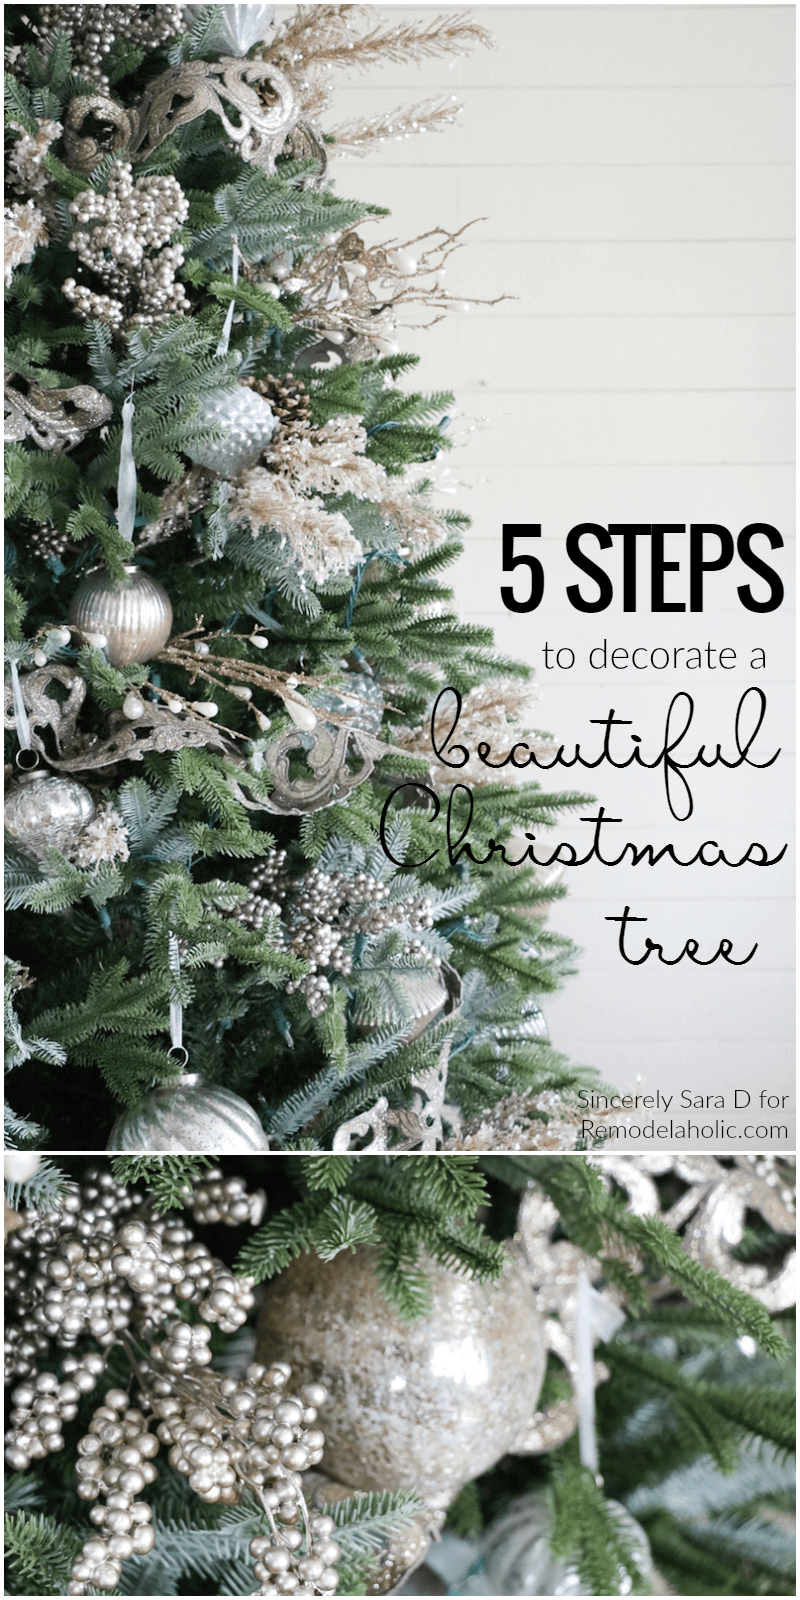 Decorate Christmas Tree in 5 Simple Steps | Best Way to Decorate Christmas Trees on a Budget: Inexpensive or Free & Easy Holiday Ornaments & Decorations